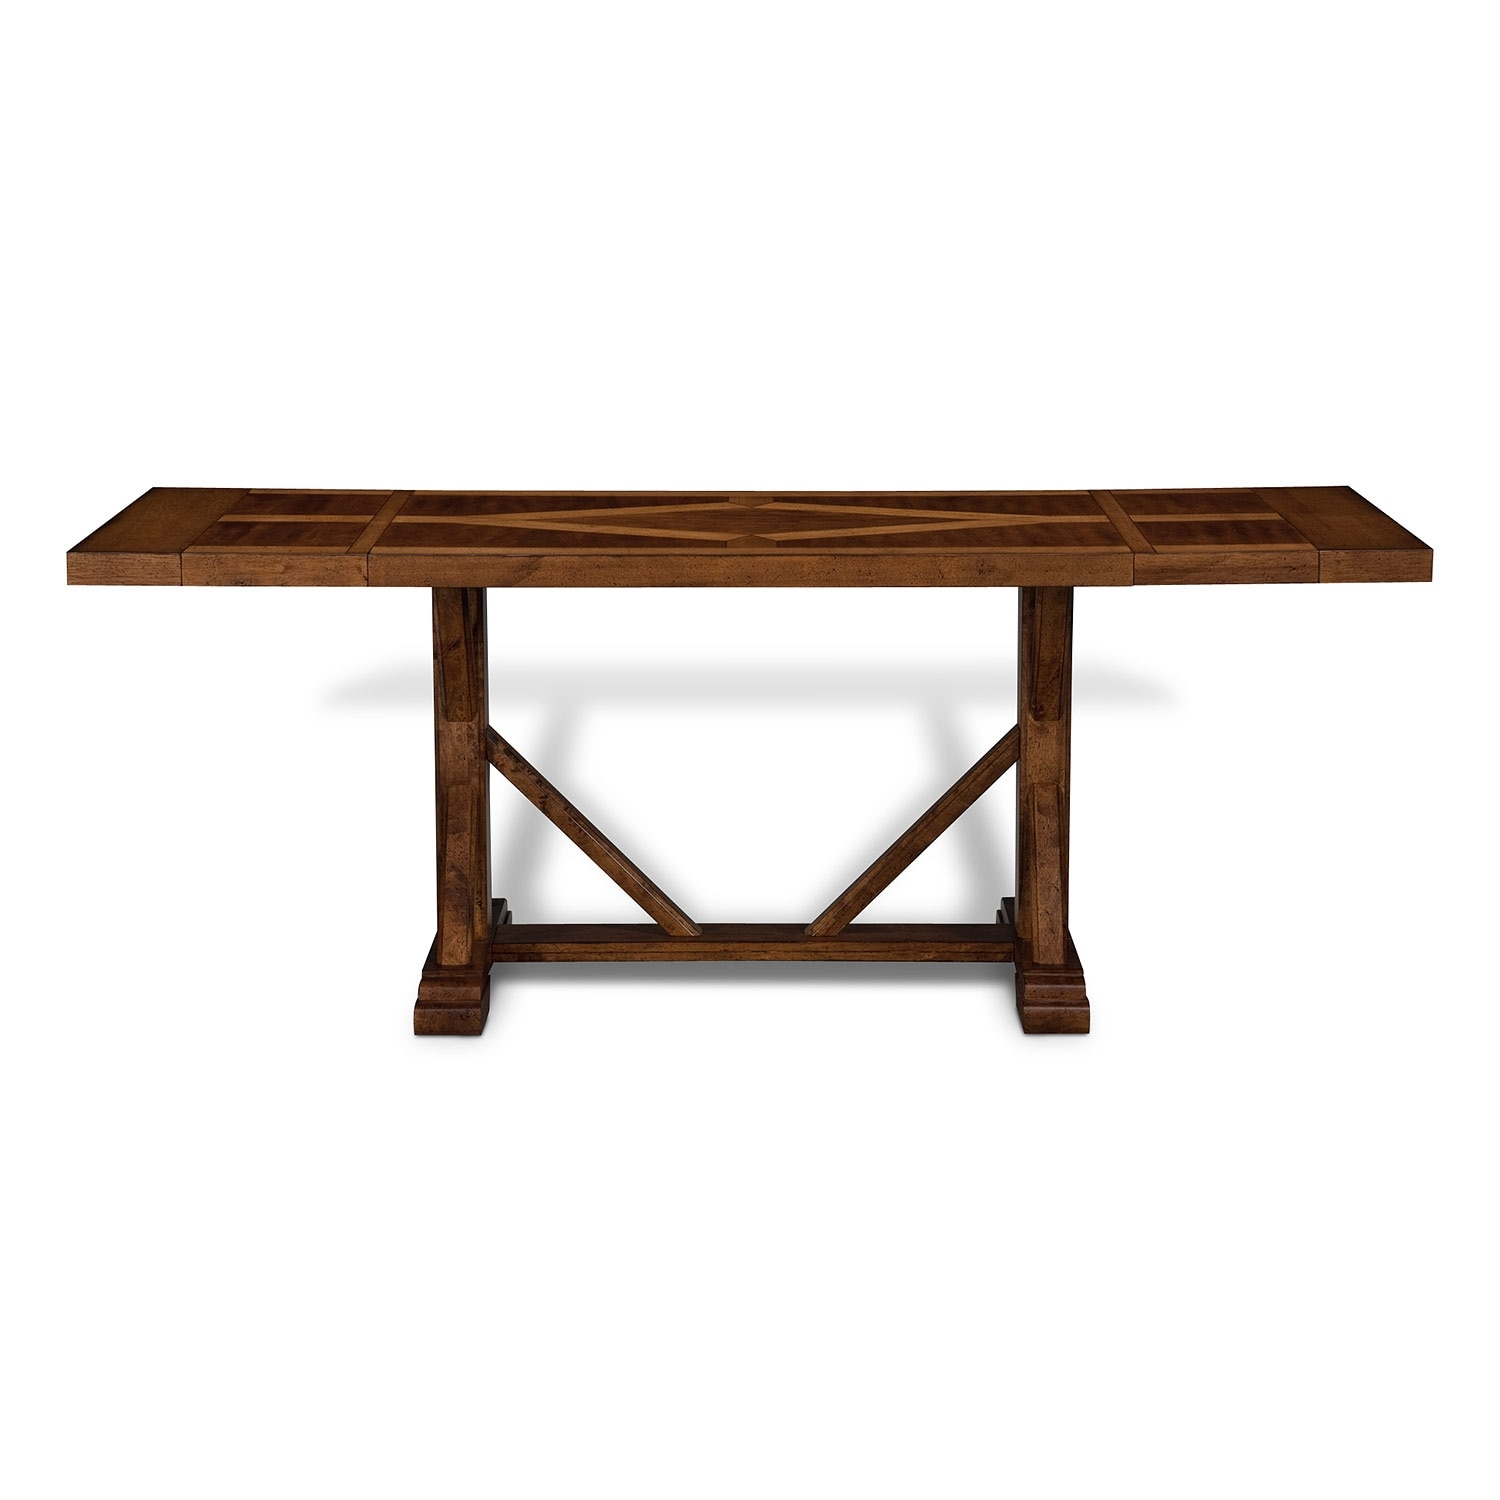 Austin Walnut Dining Room Counter Height Table Value  : 276821 from valuecity.com size 1500 x 1500 jpeg 88kB